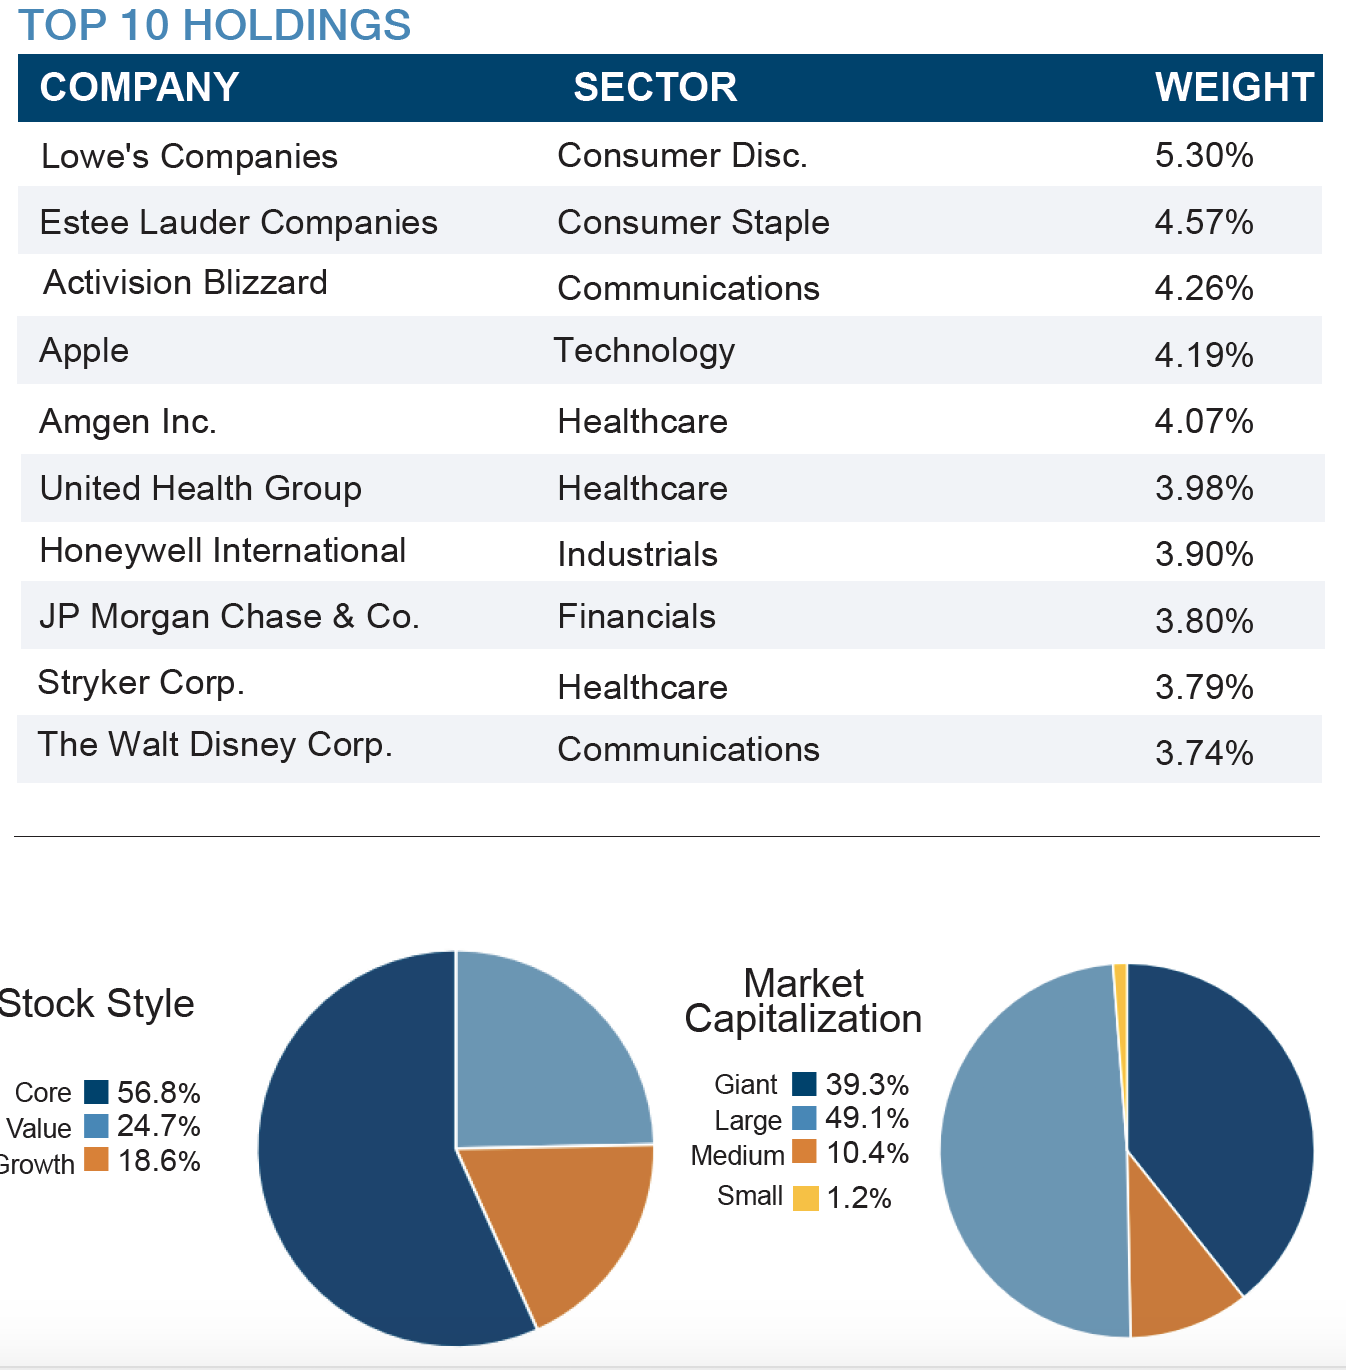 Quality Growth Top 10 Holdings - Q1 2021